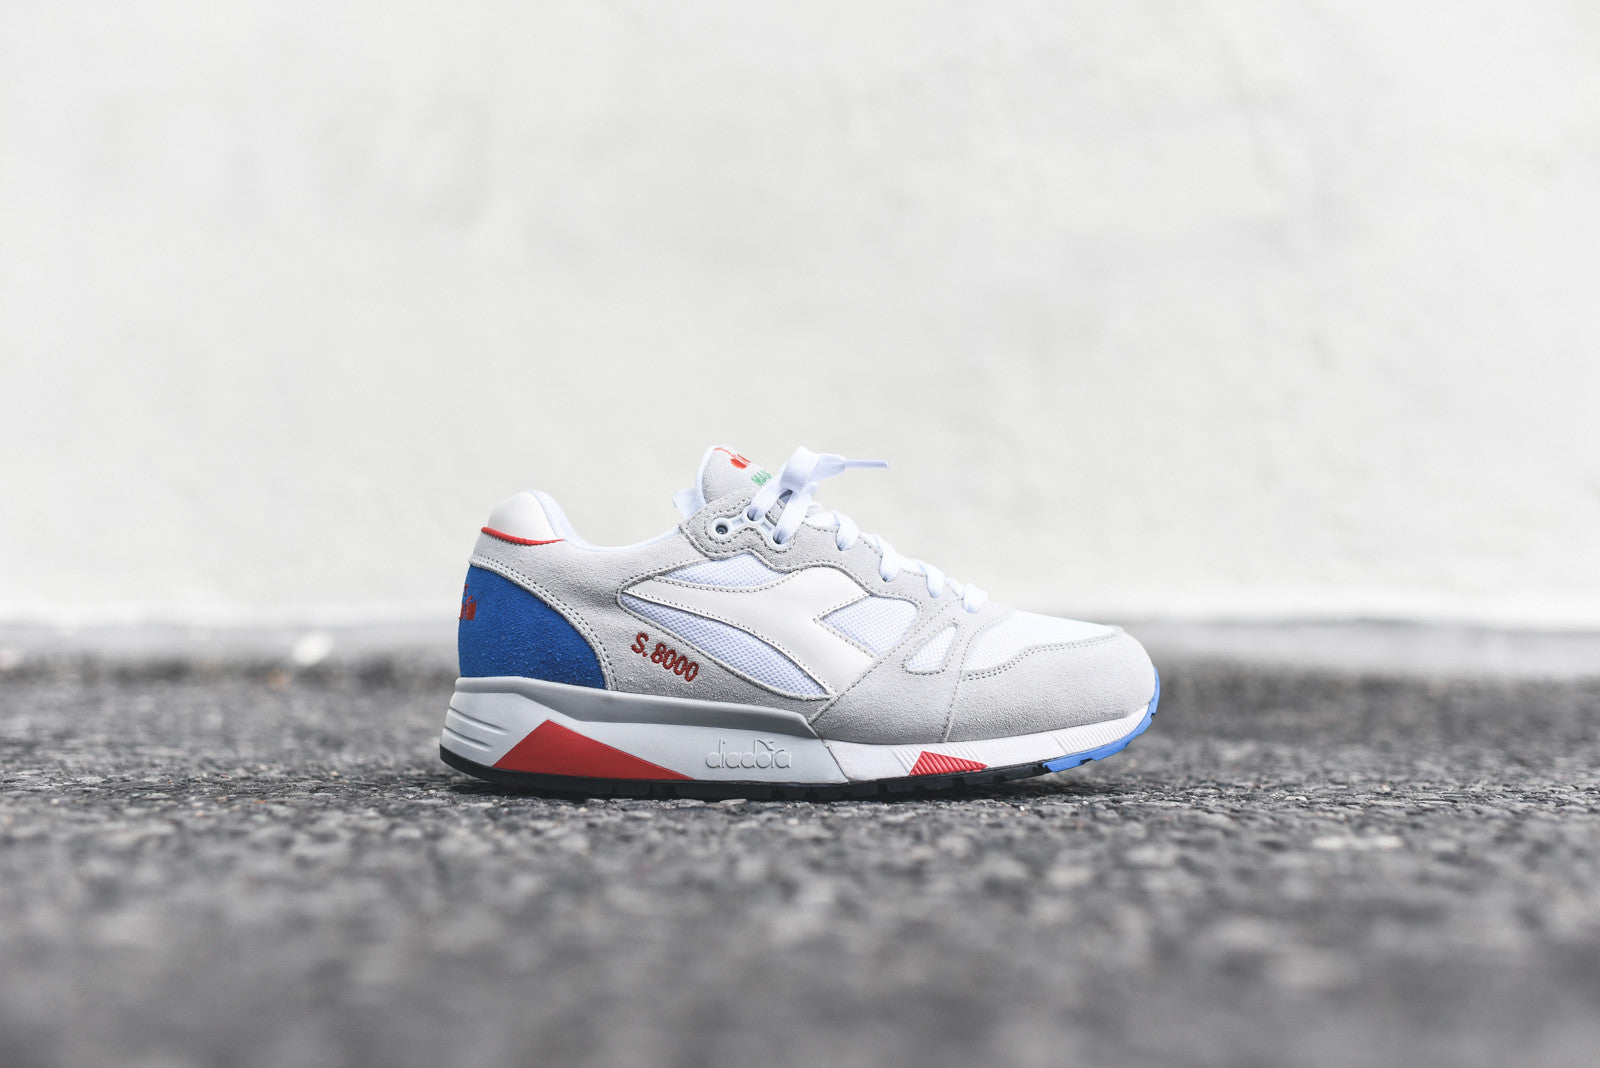 Diadora S8000 Italia - Light Grey / Micro Blue